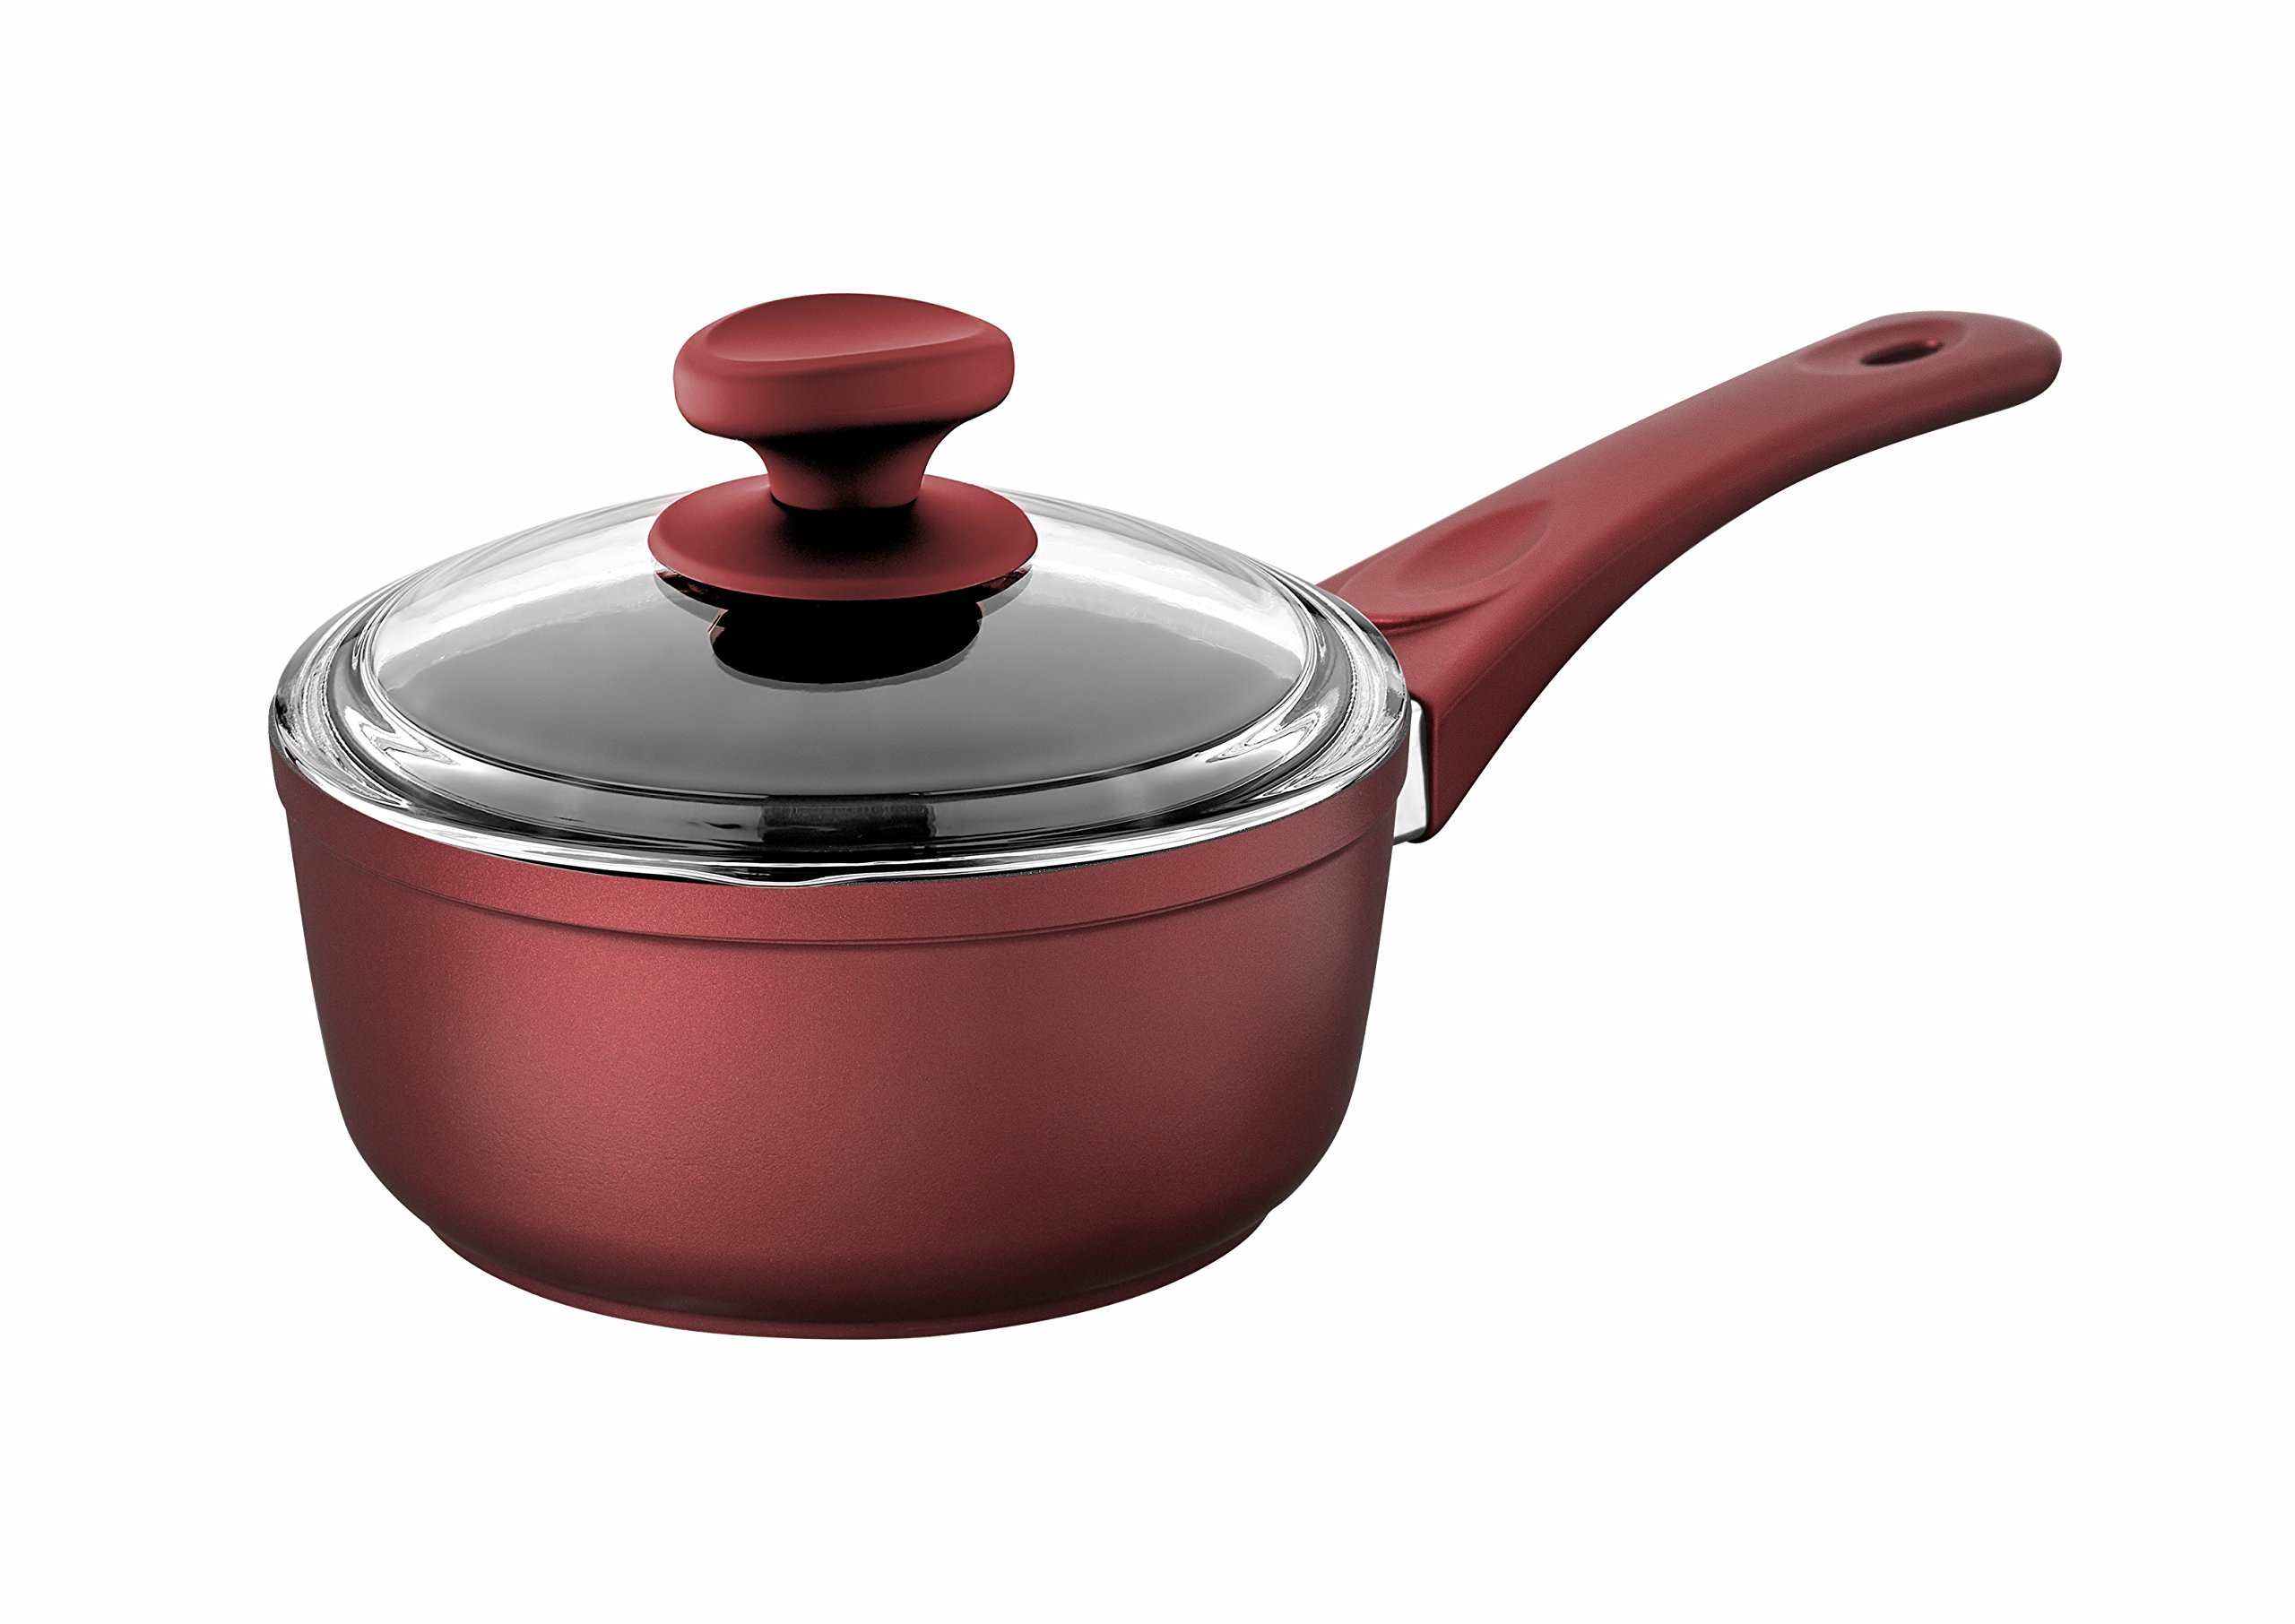 Saflon Titanium Nonstick 1.5-Quart Sauce Pan with Tempered Glass Lid, 4mm Forged Aluminum with PFOA Free Coating from England (Red)